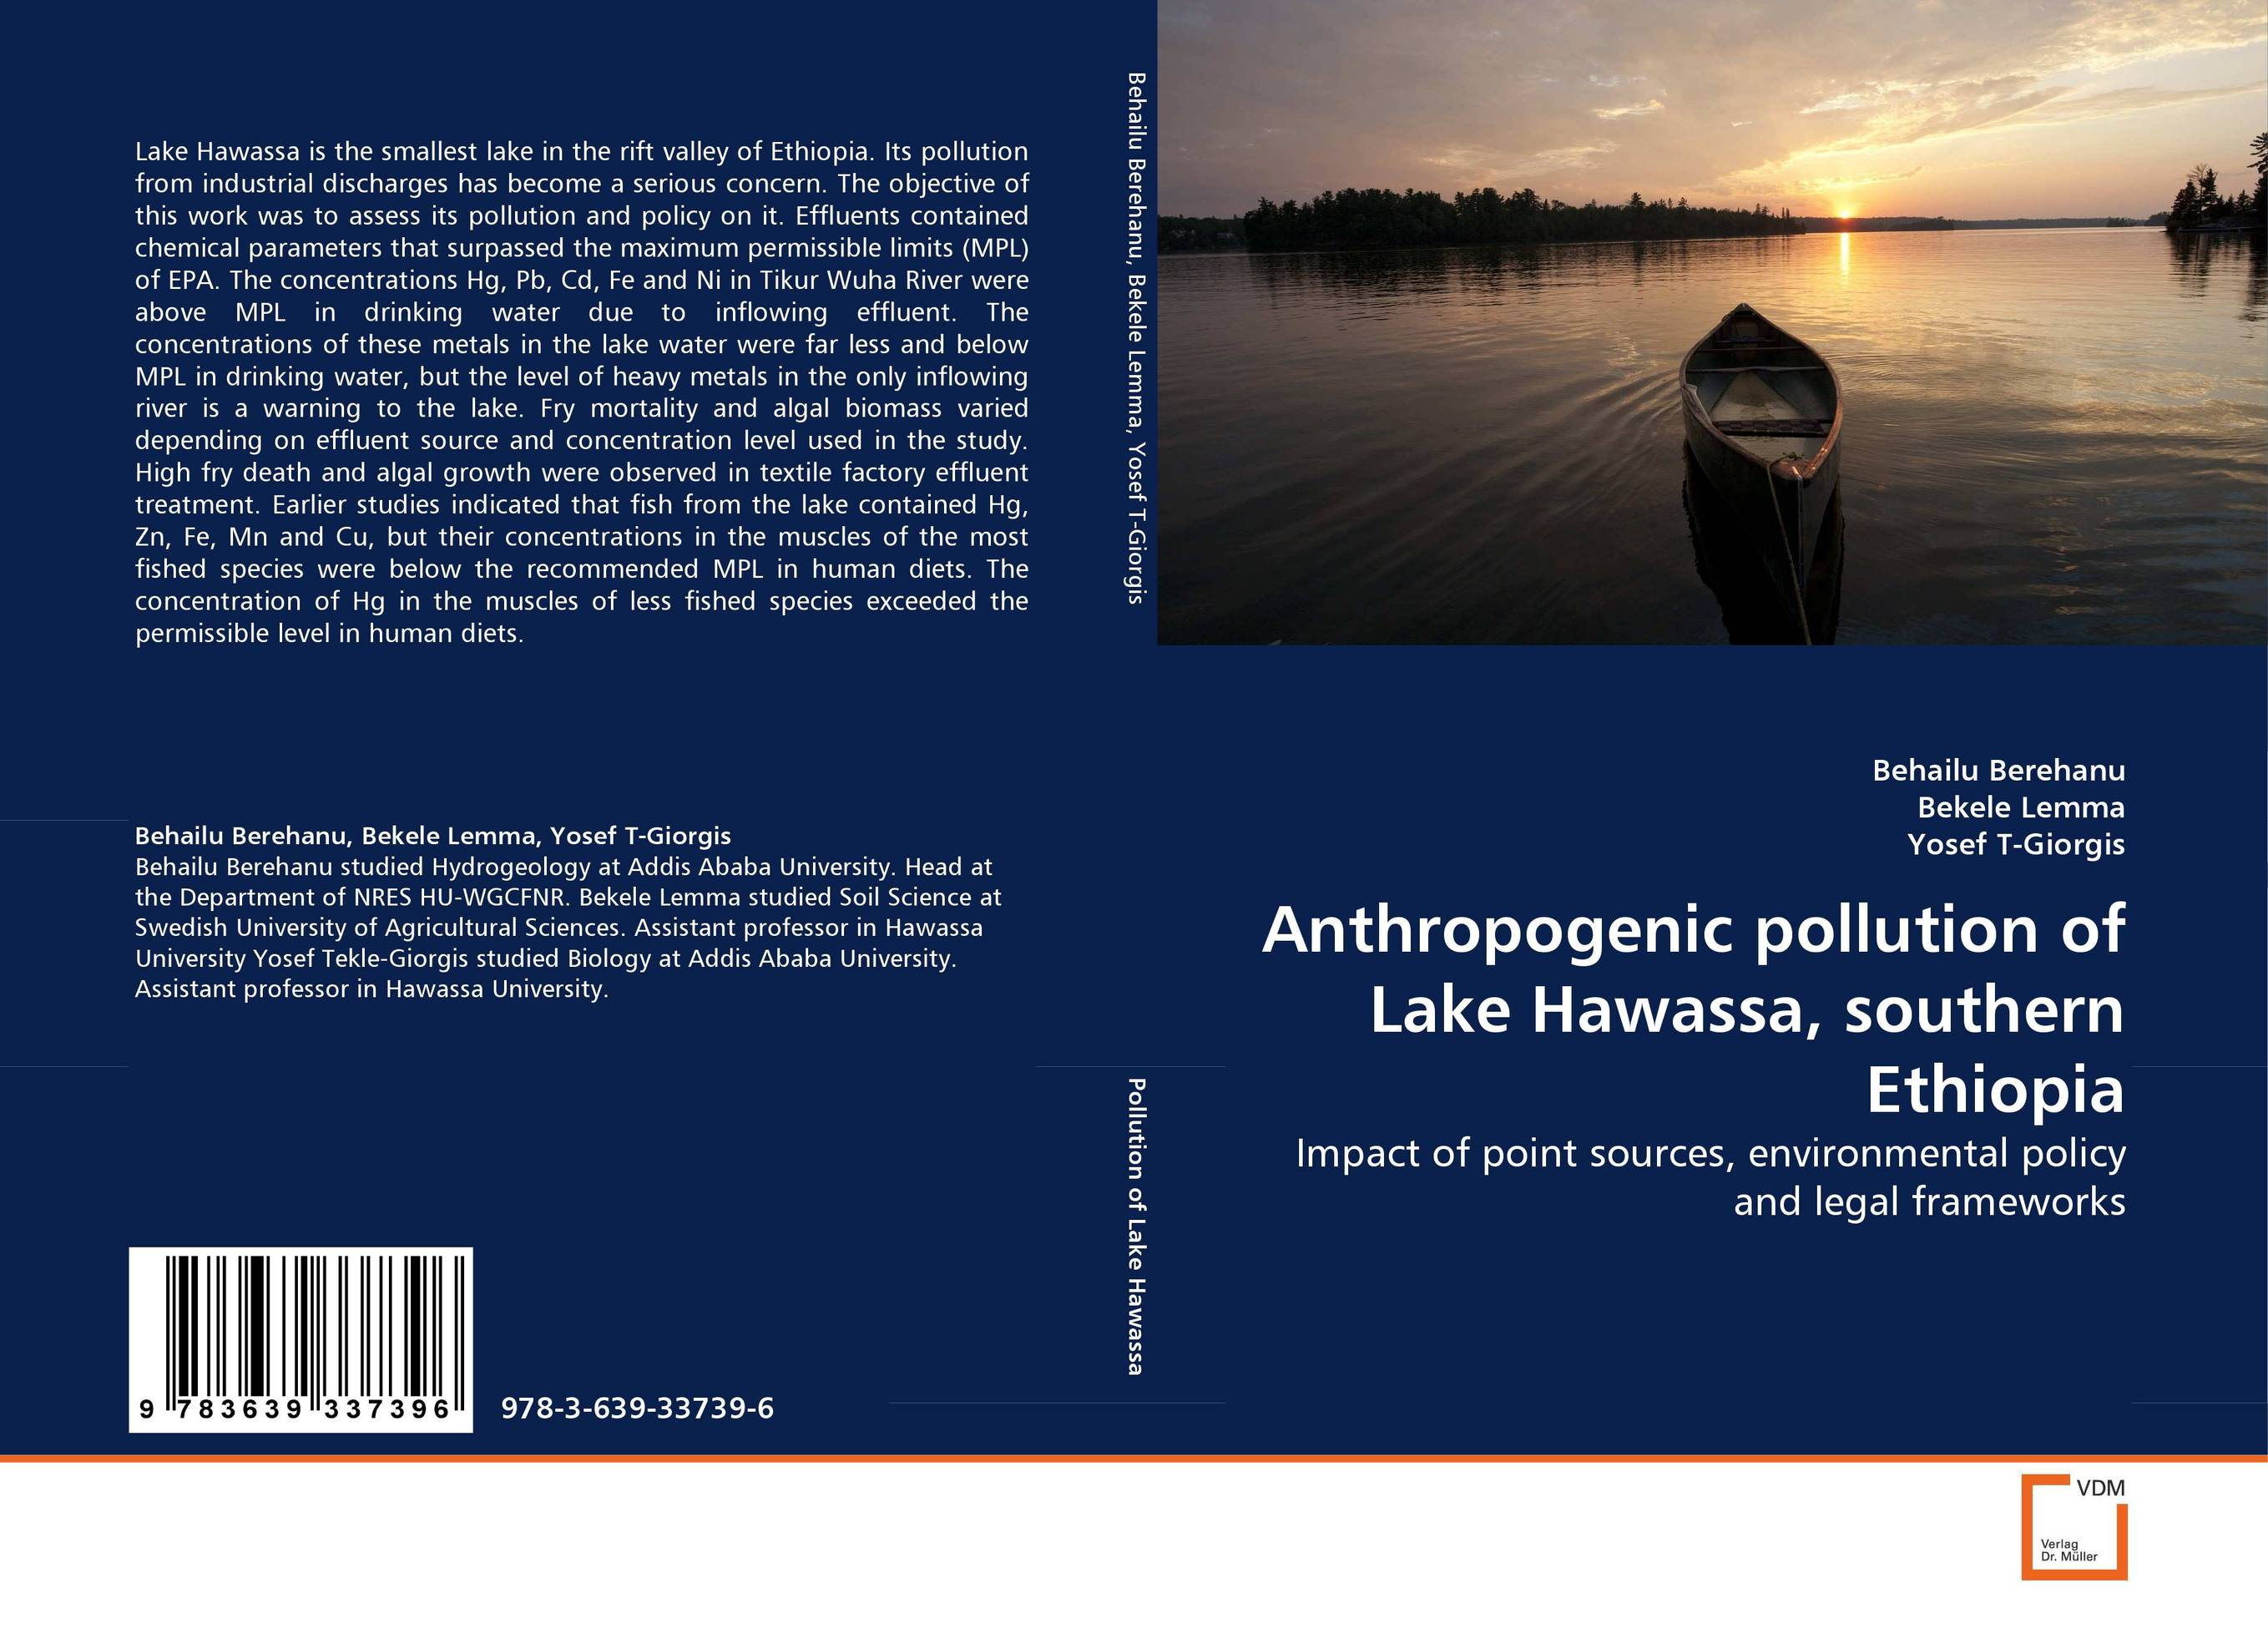 Фото Anthropogenic pollution of Lake Hawassa, southern Ethiopia cervical cancer in amhara region in ethiopia